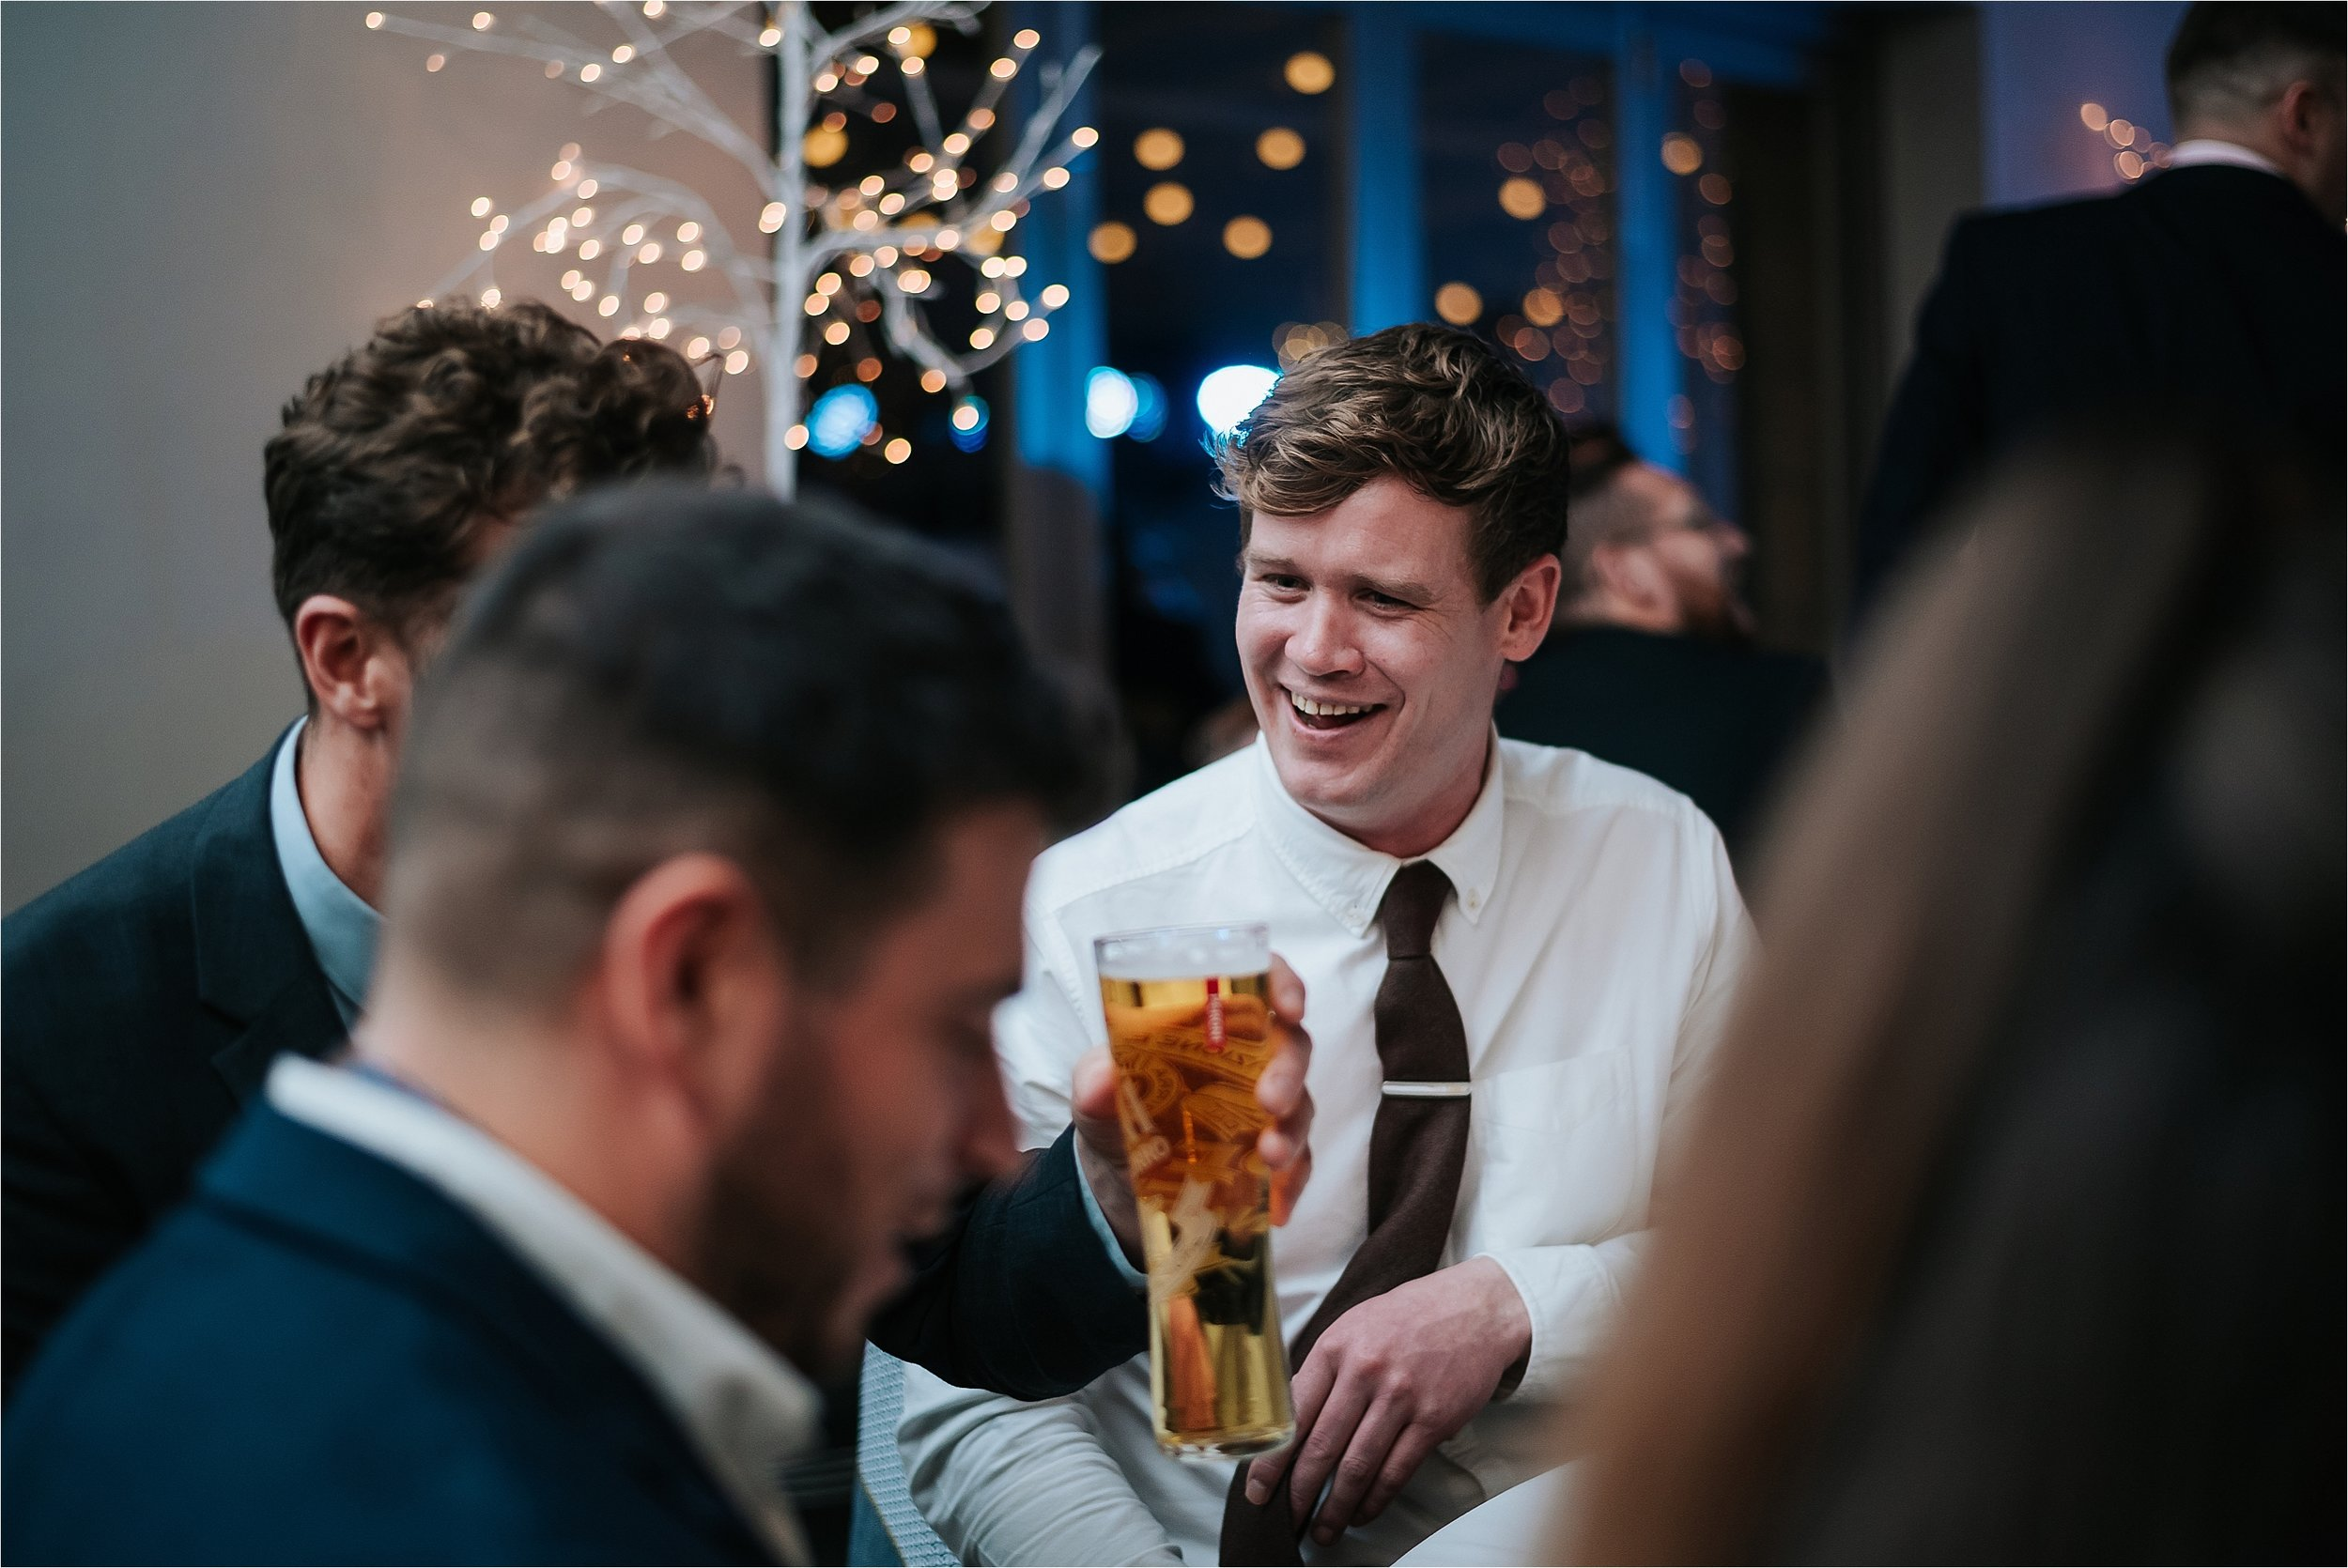 guy laughing at wedding party